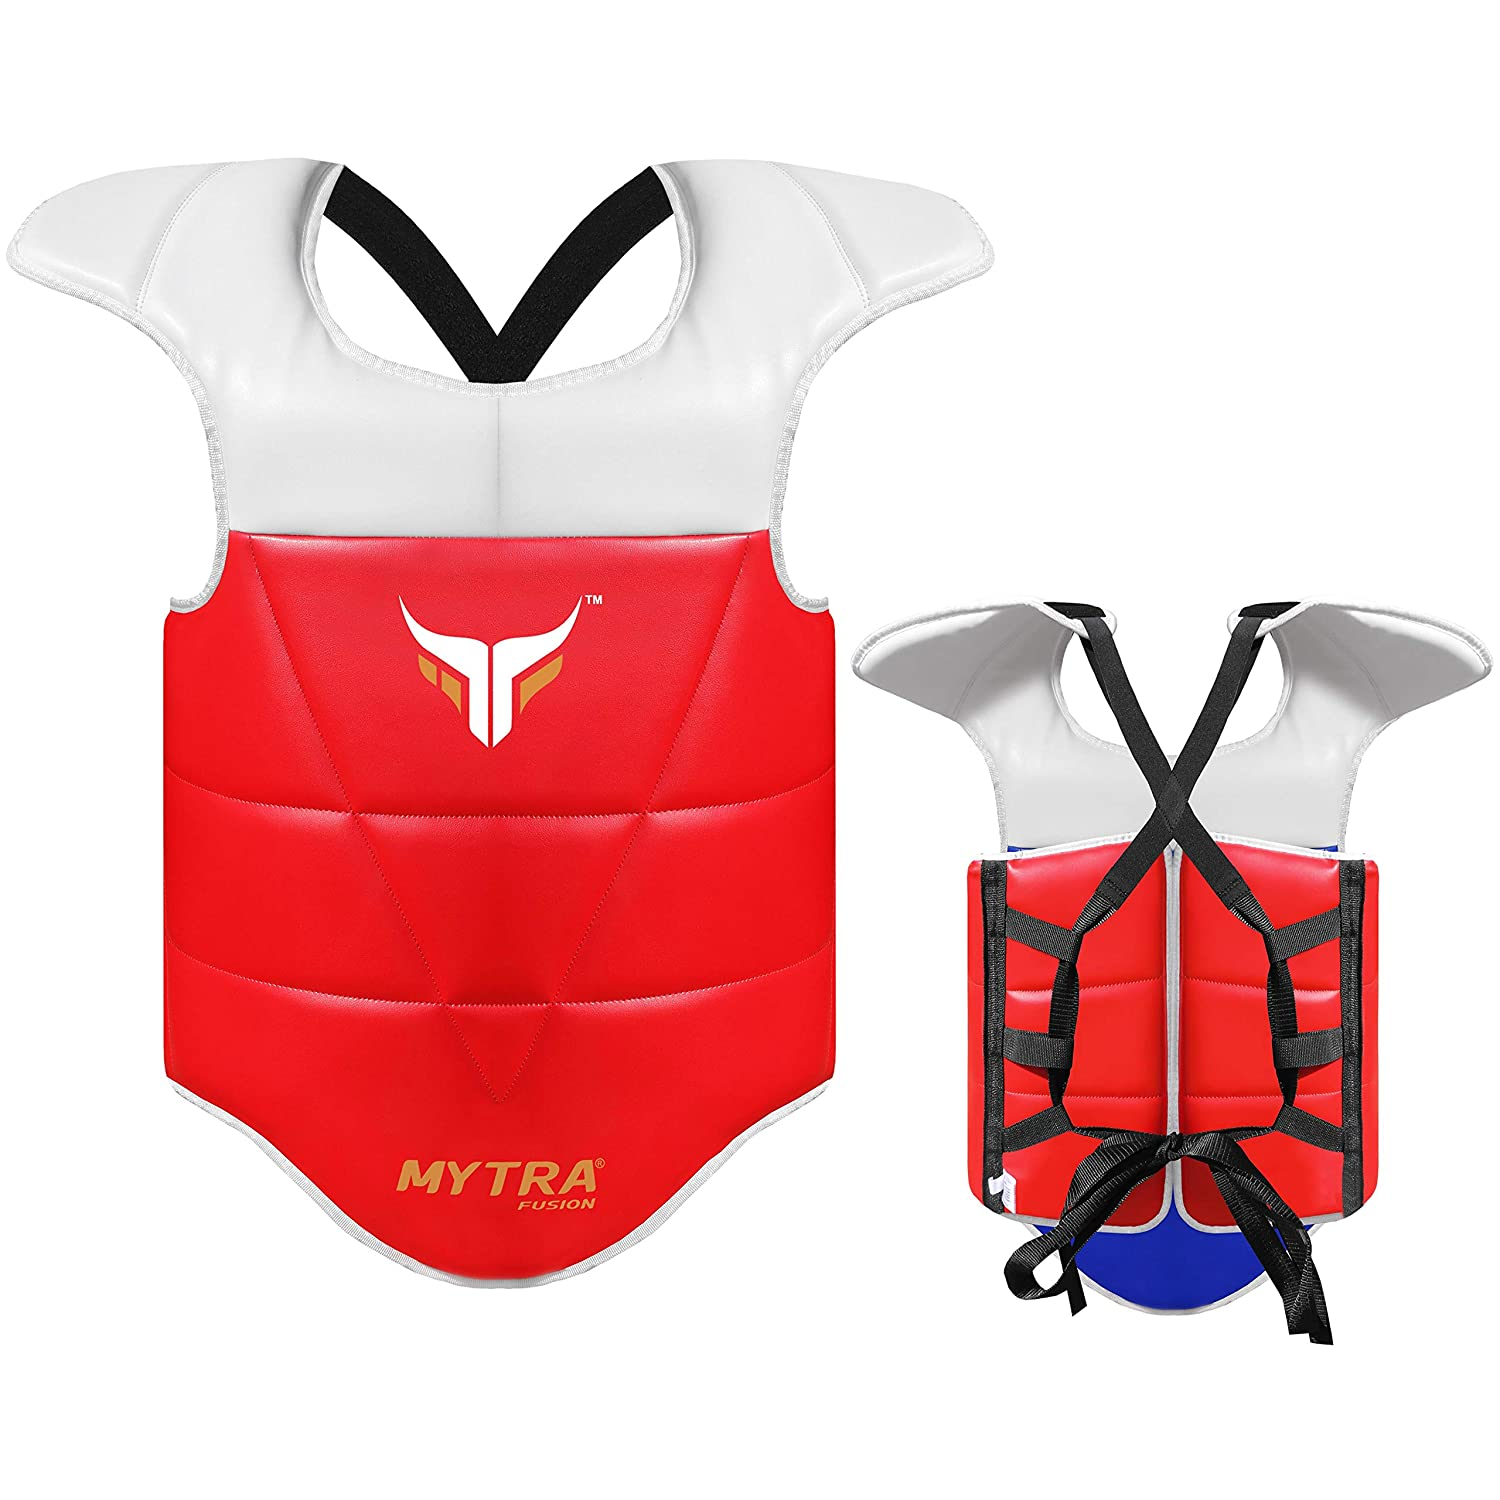 Mytra Fusion Taekwondo Chest Guard Chest /& Belly Protector Body Shield Body Armor for Martial Art